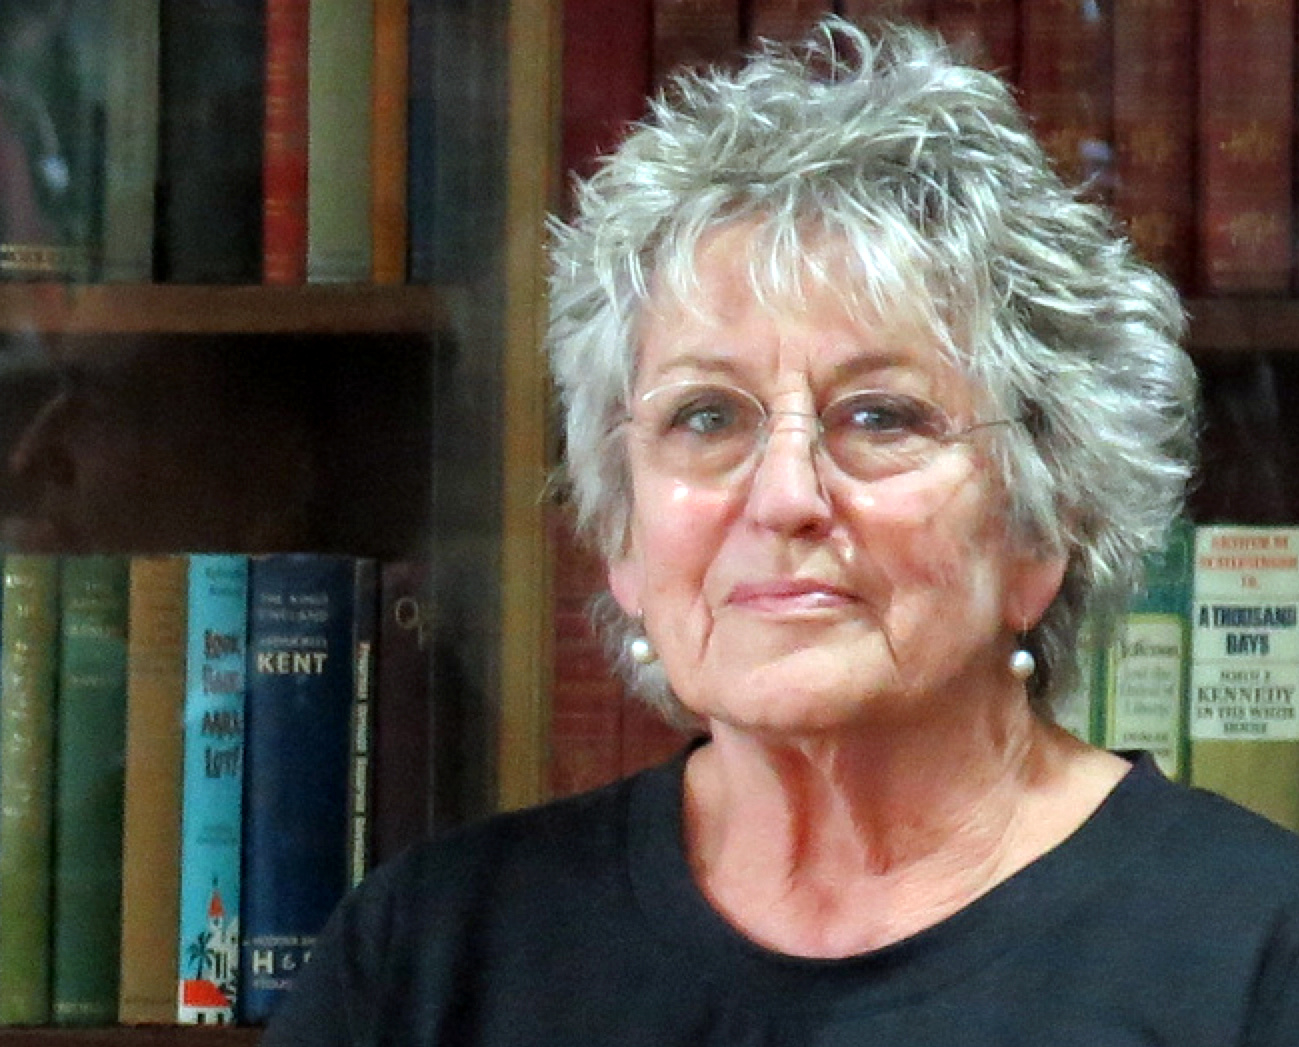 Germaine_Greer,_28_October_2013_(cropped).jpg